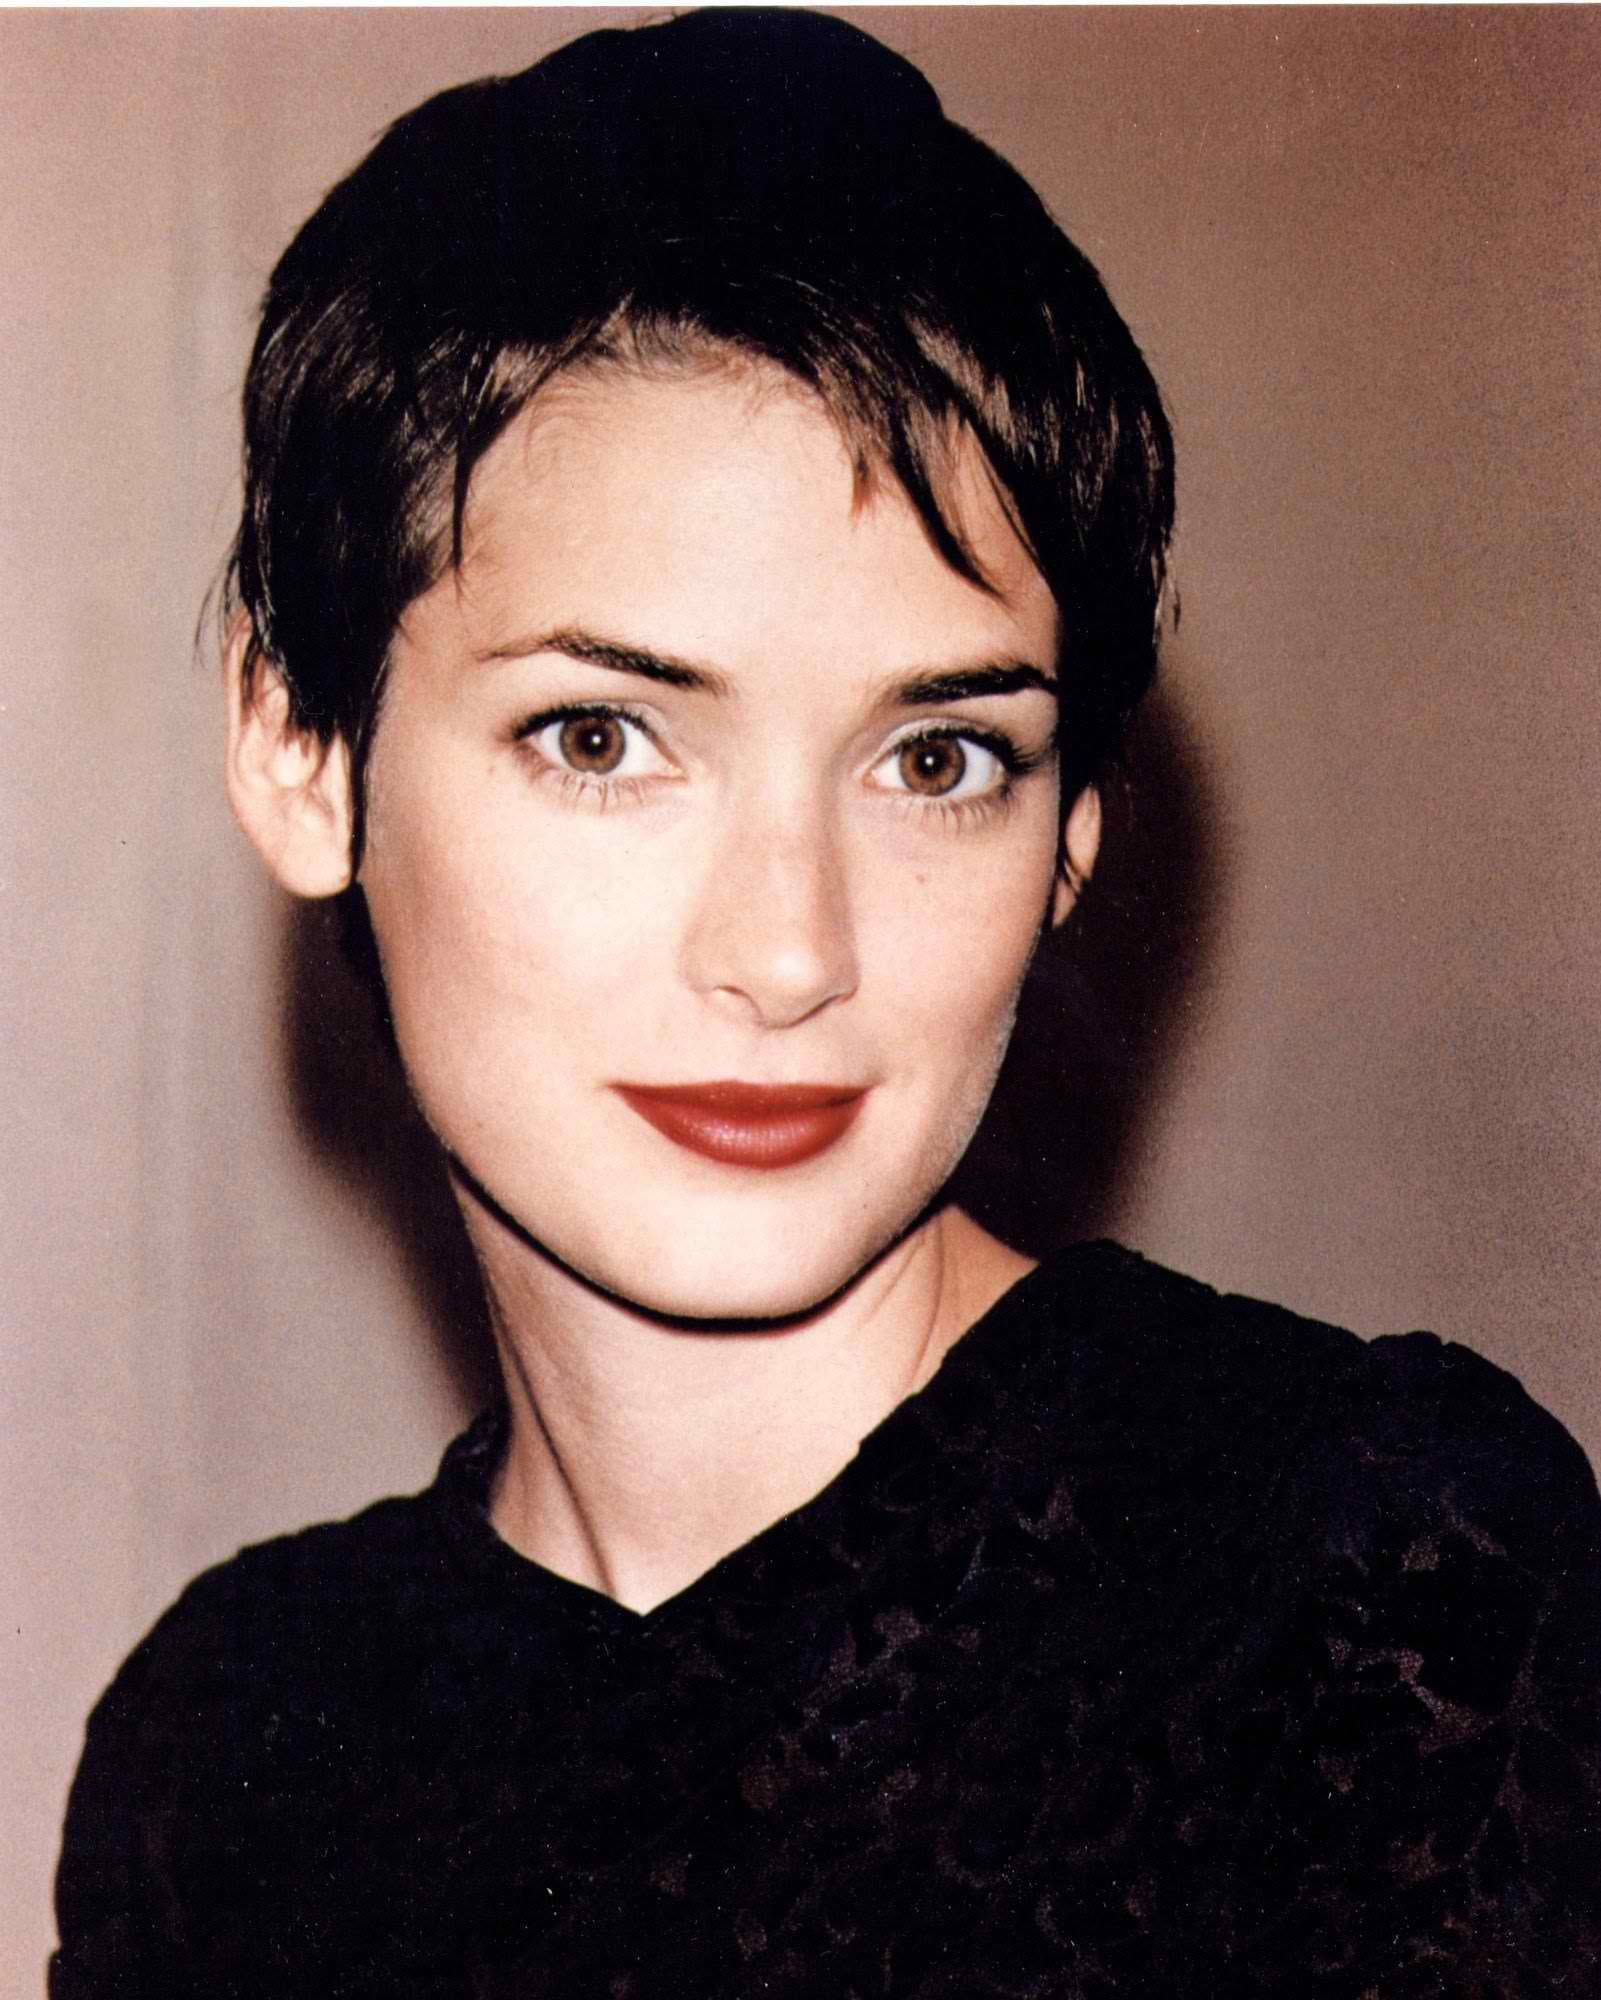 Winona Ryder Winona Ryder HD Wallpapers for desktop download